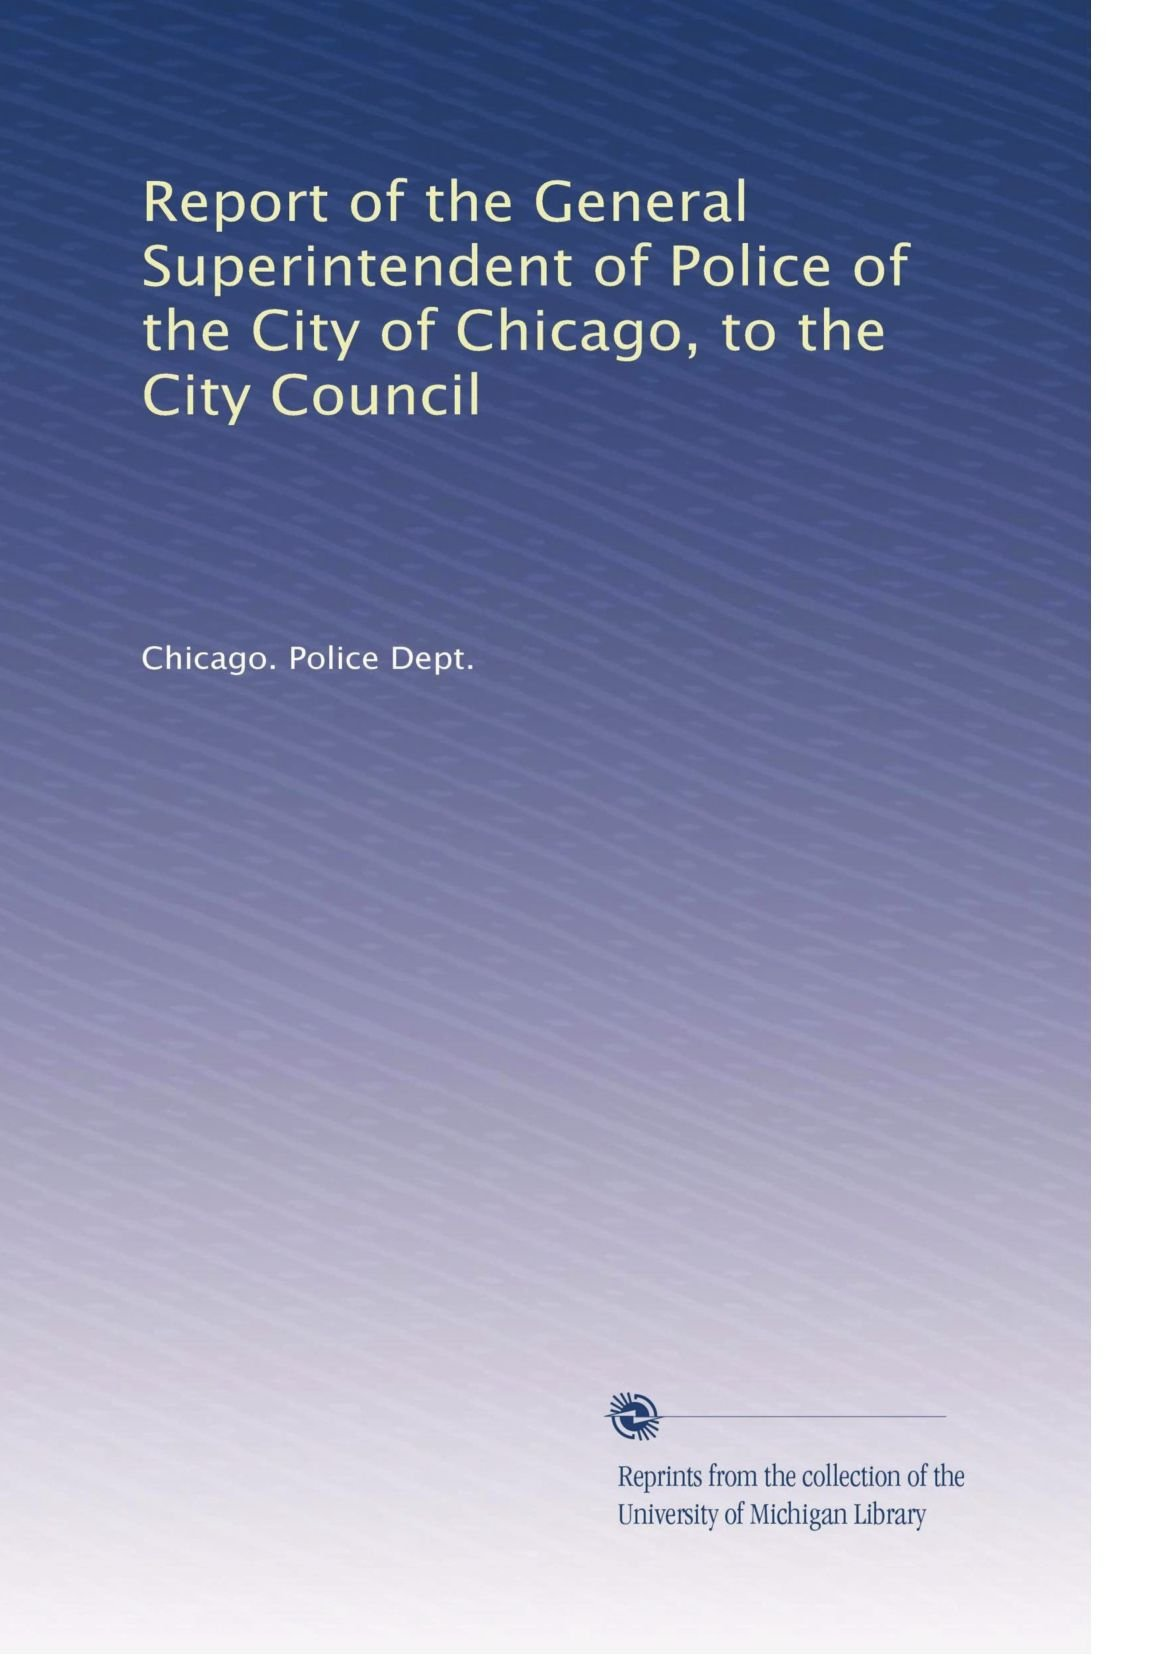 Report of the General Superintendent of Police of the City of Chicago, to the City Council PDF